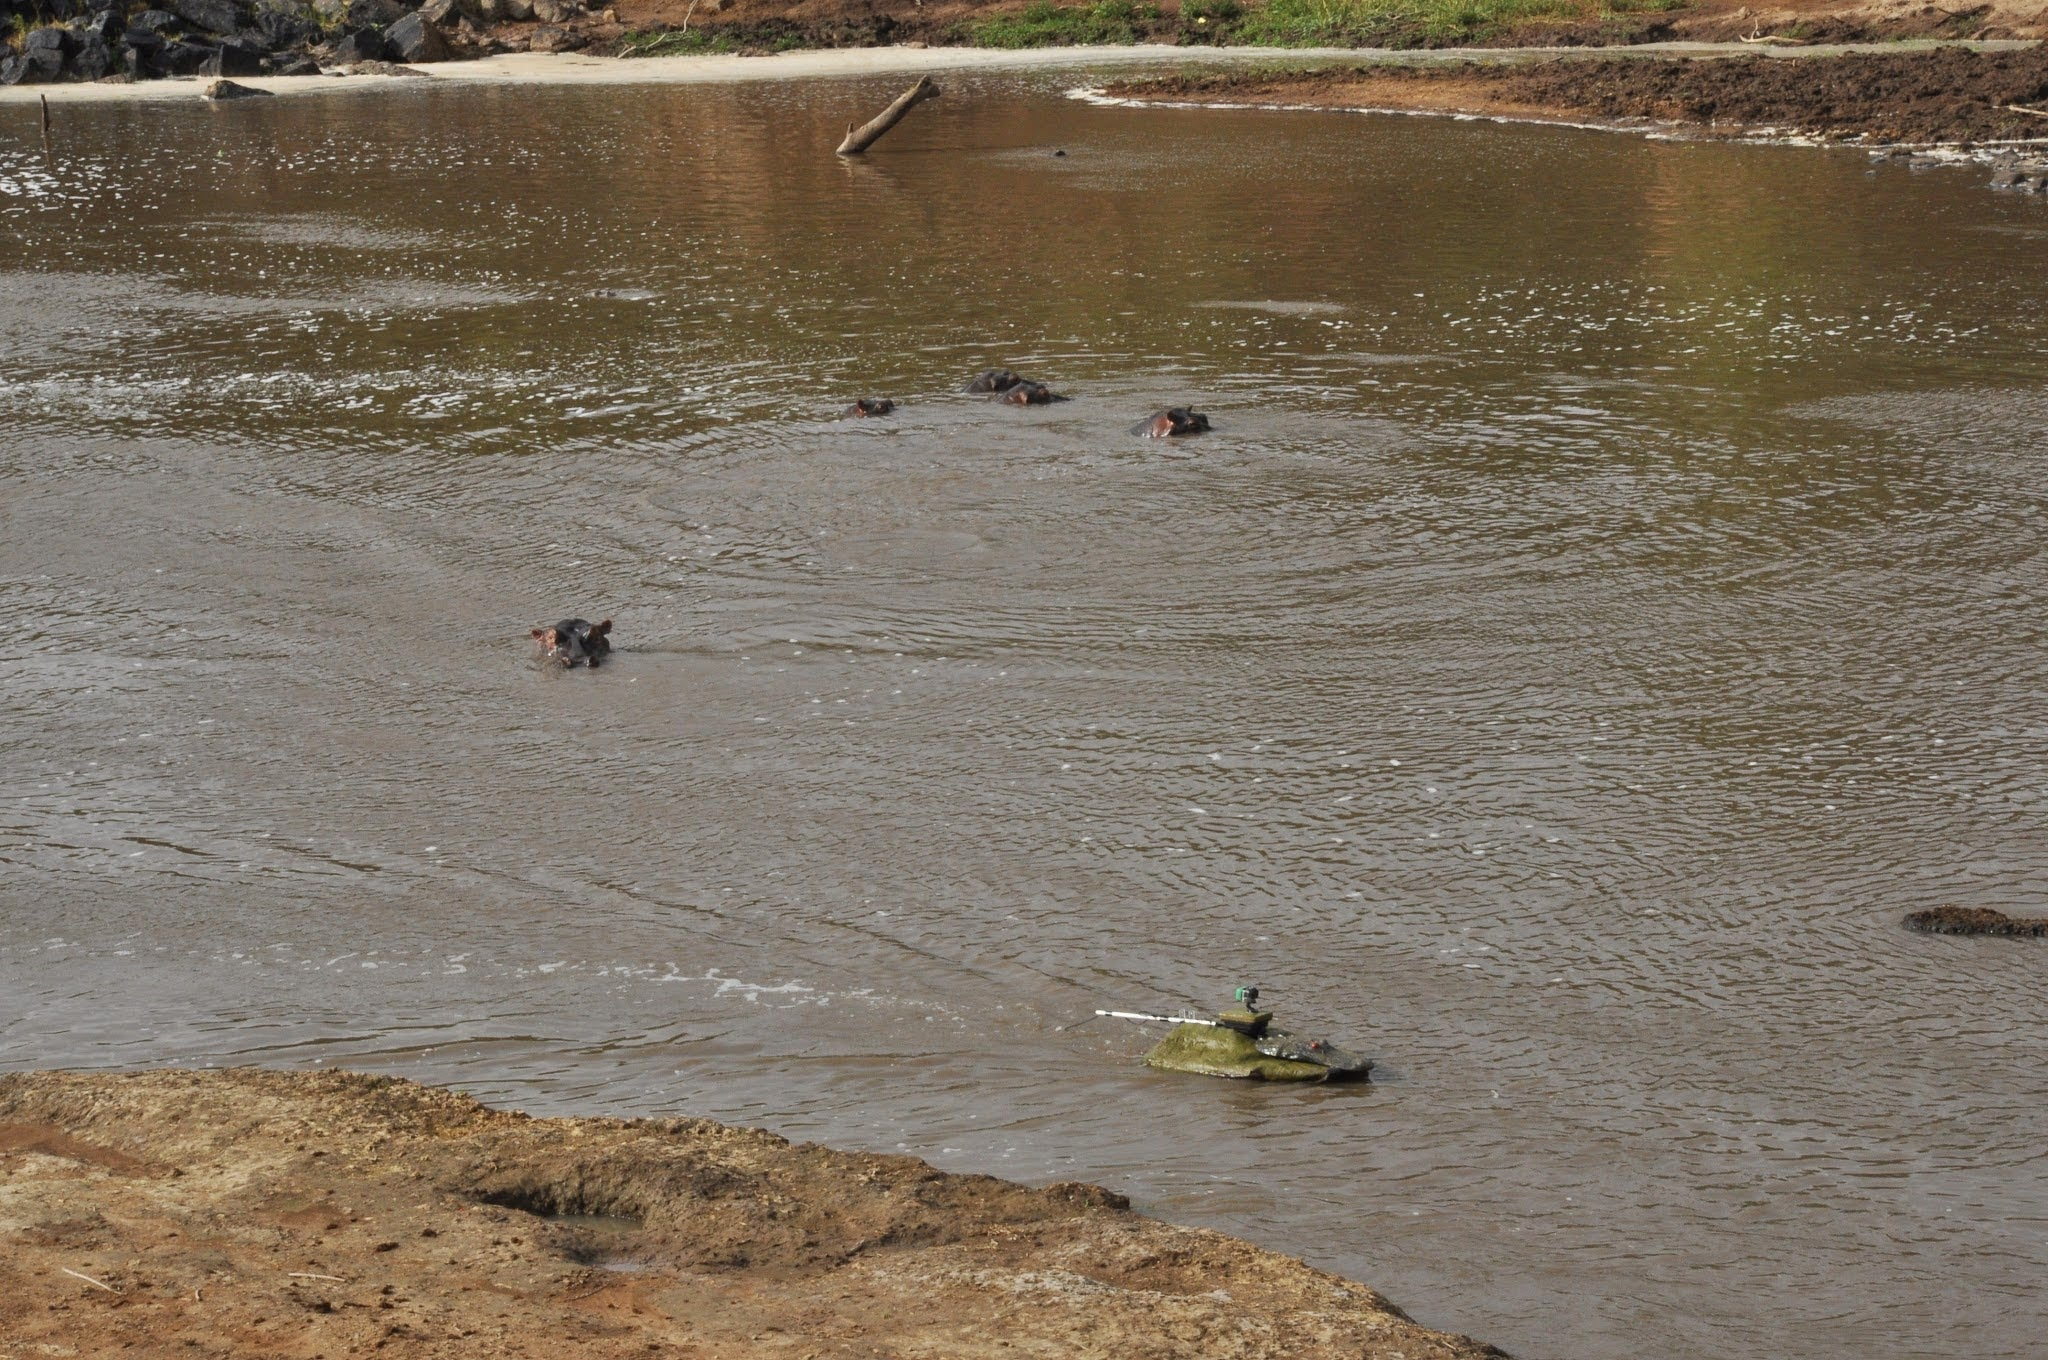 Robo-Boats Disguised As Crocodiles Sneakily Study Hippo Poo